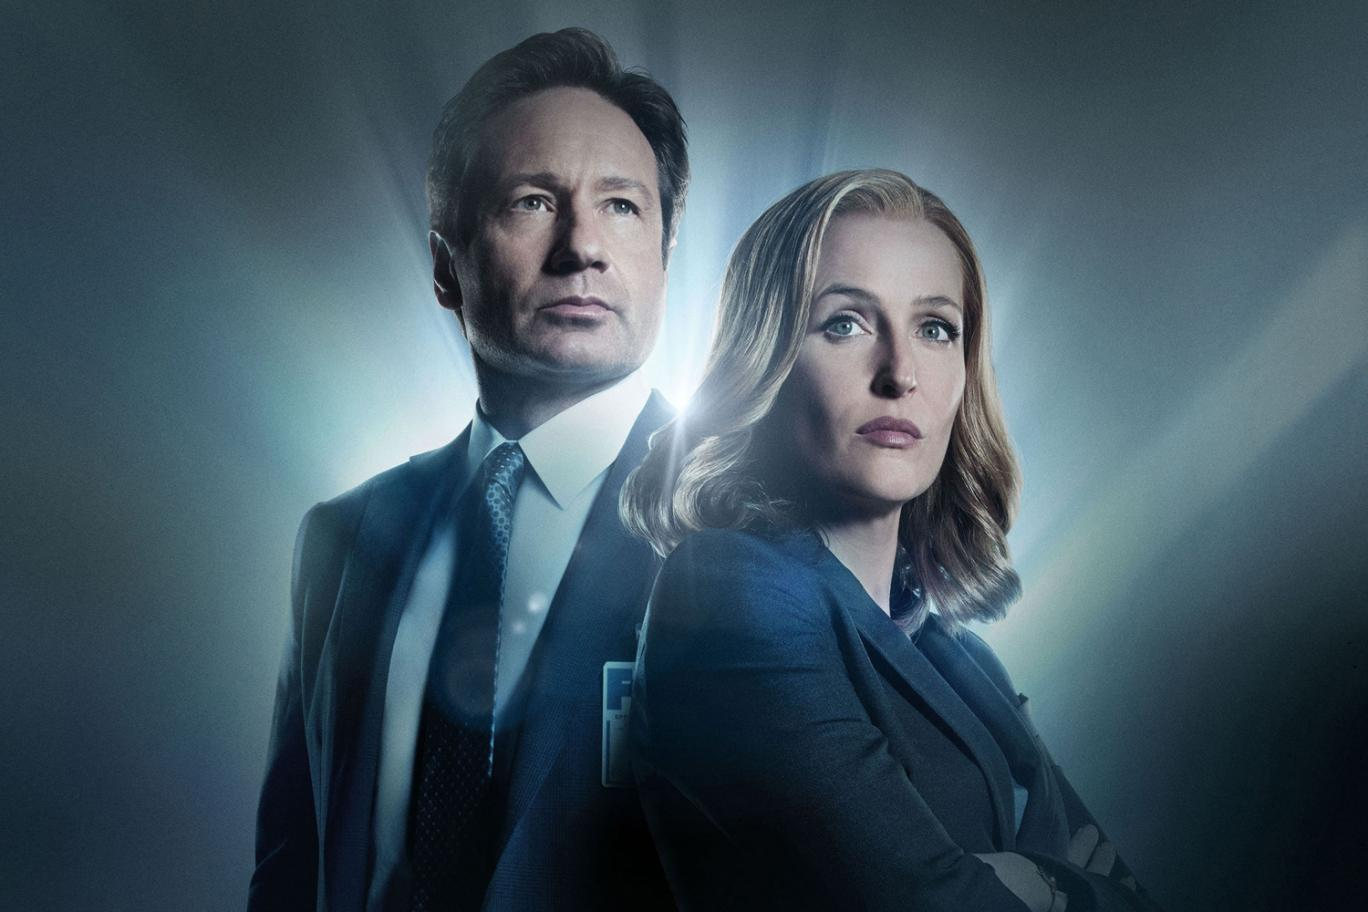 Video: The past is present again: The CraveCast talks VR and 'X-Files' in 2016